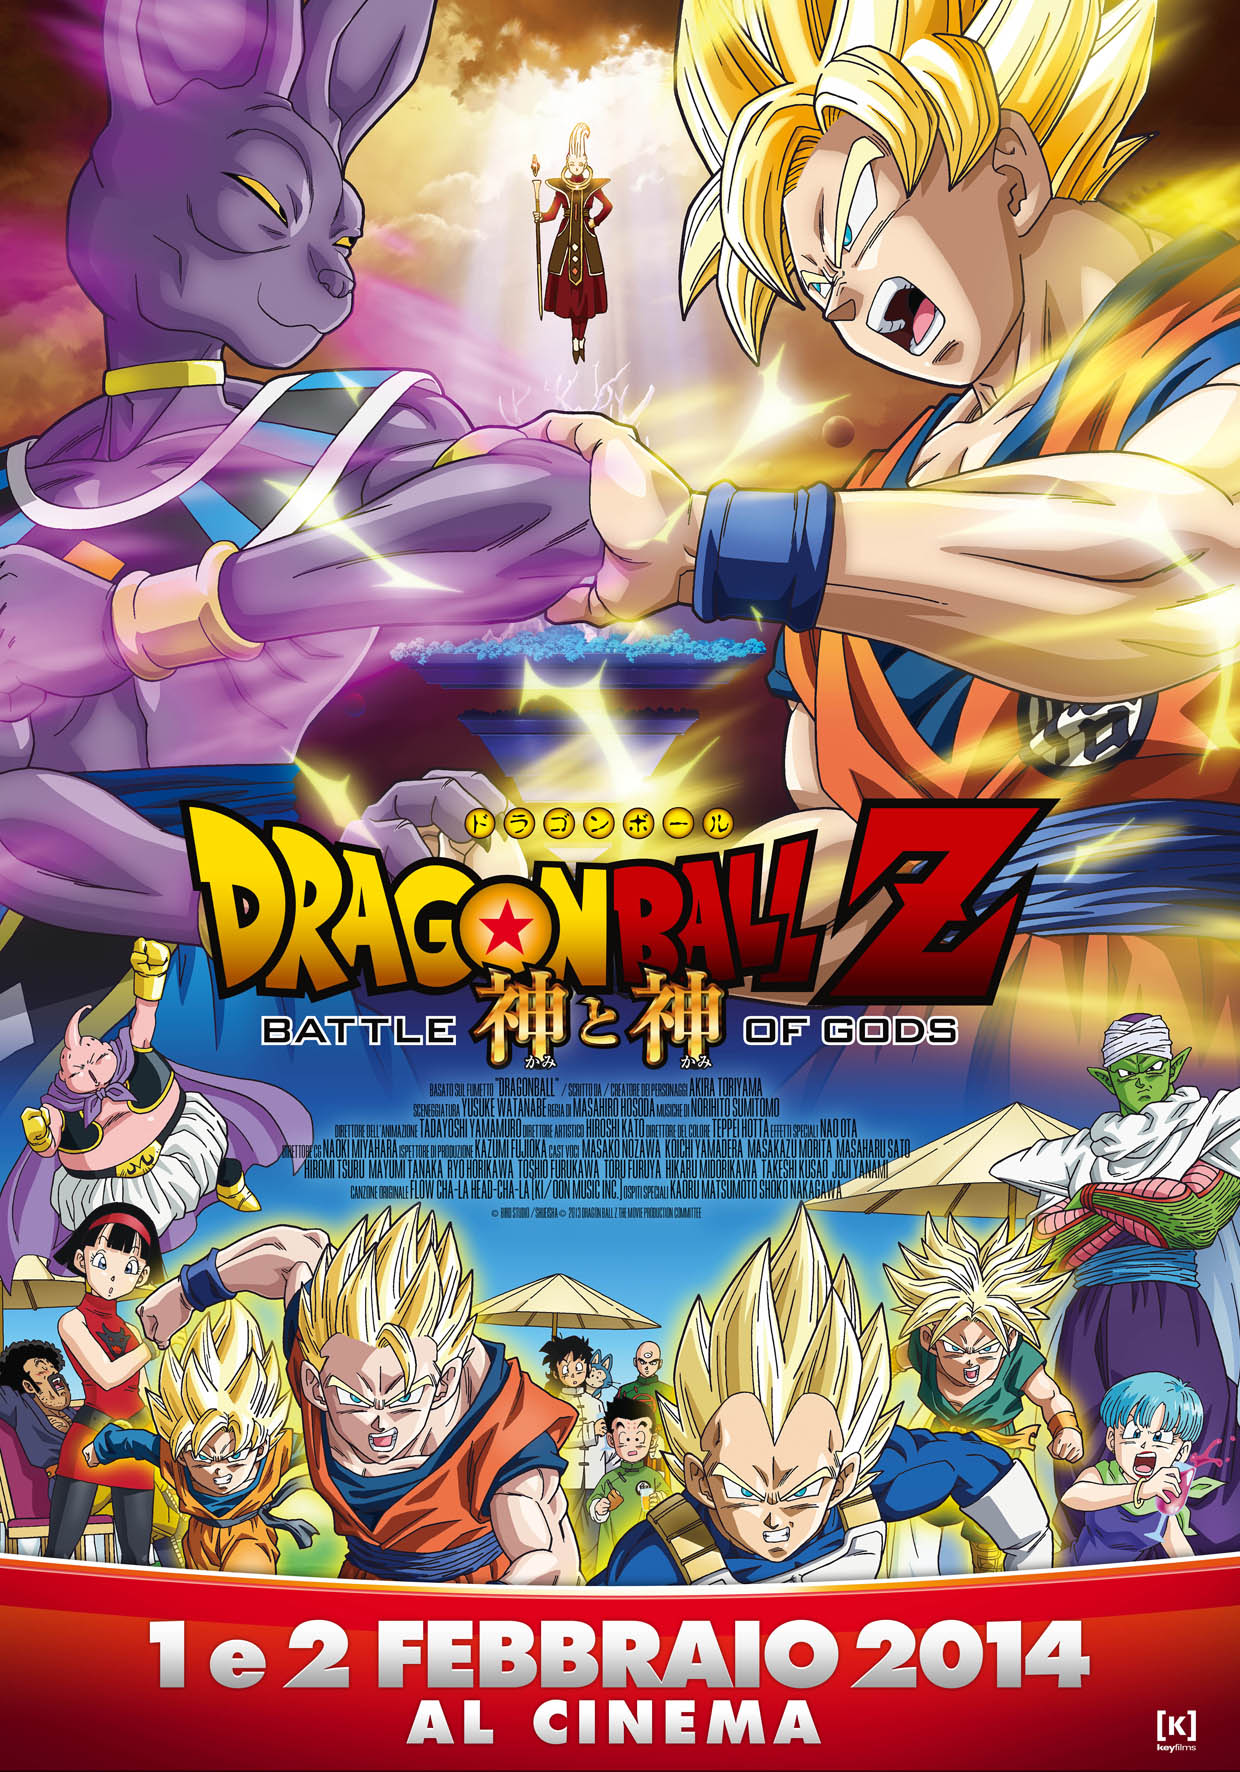 dragon ball z battaglia degli dei cinema